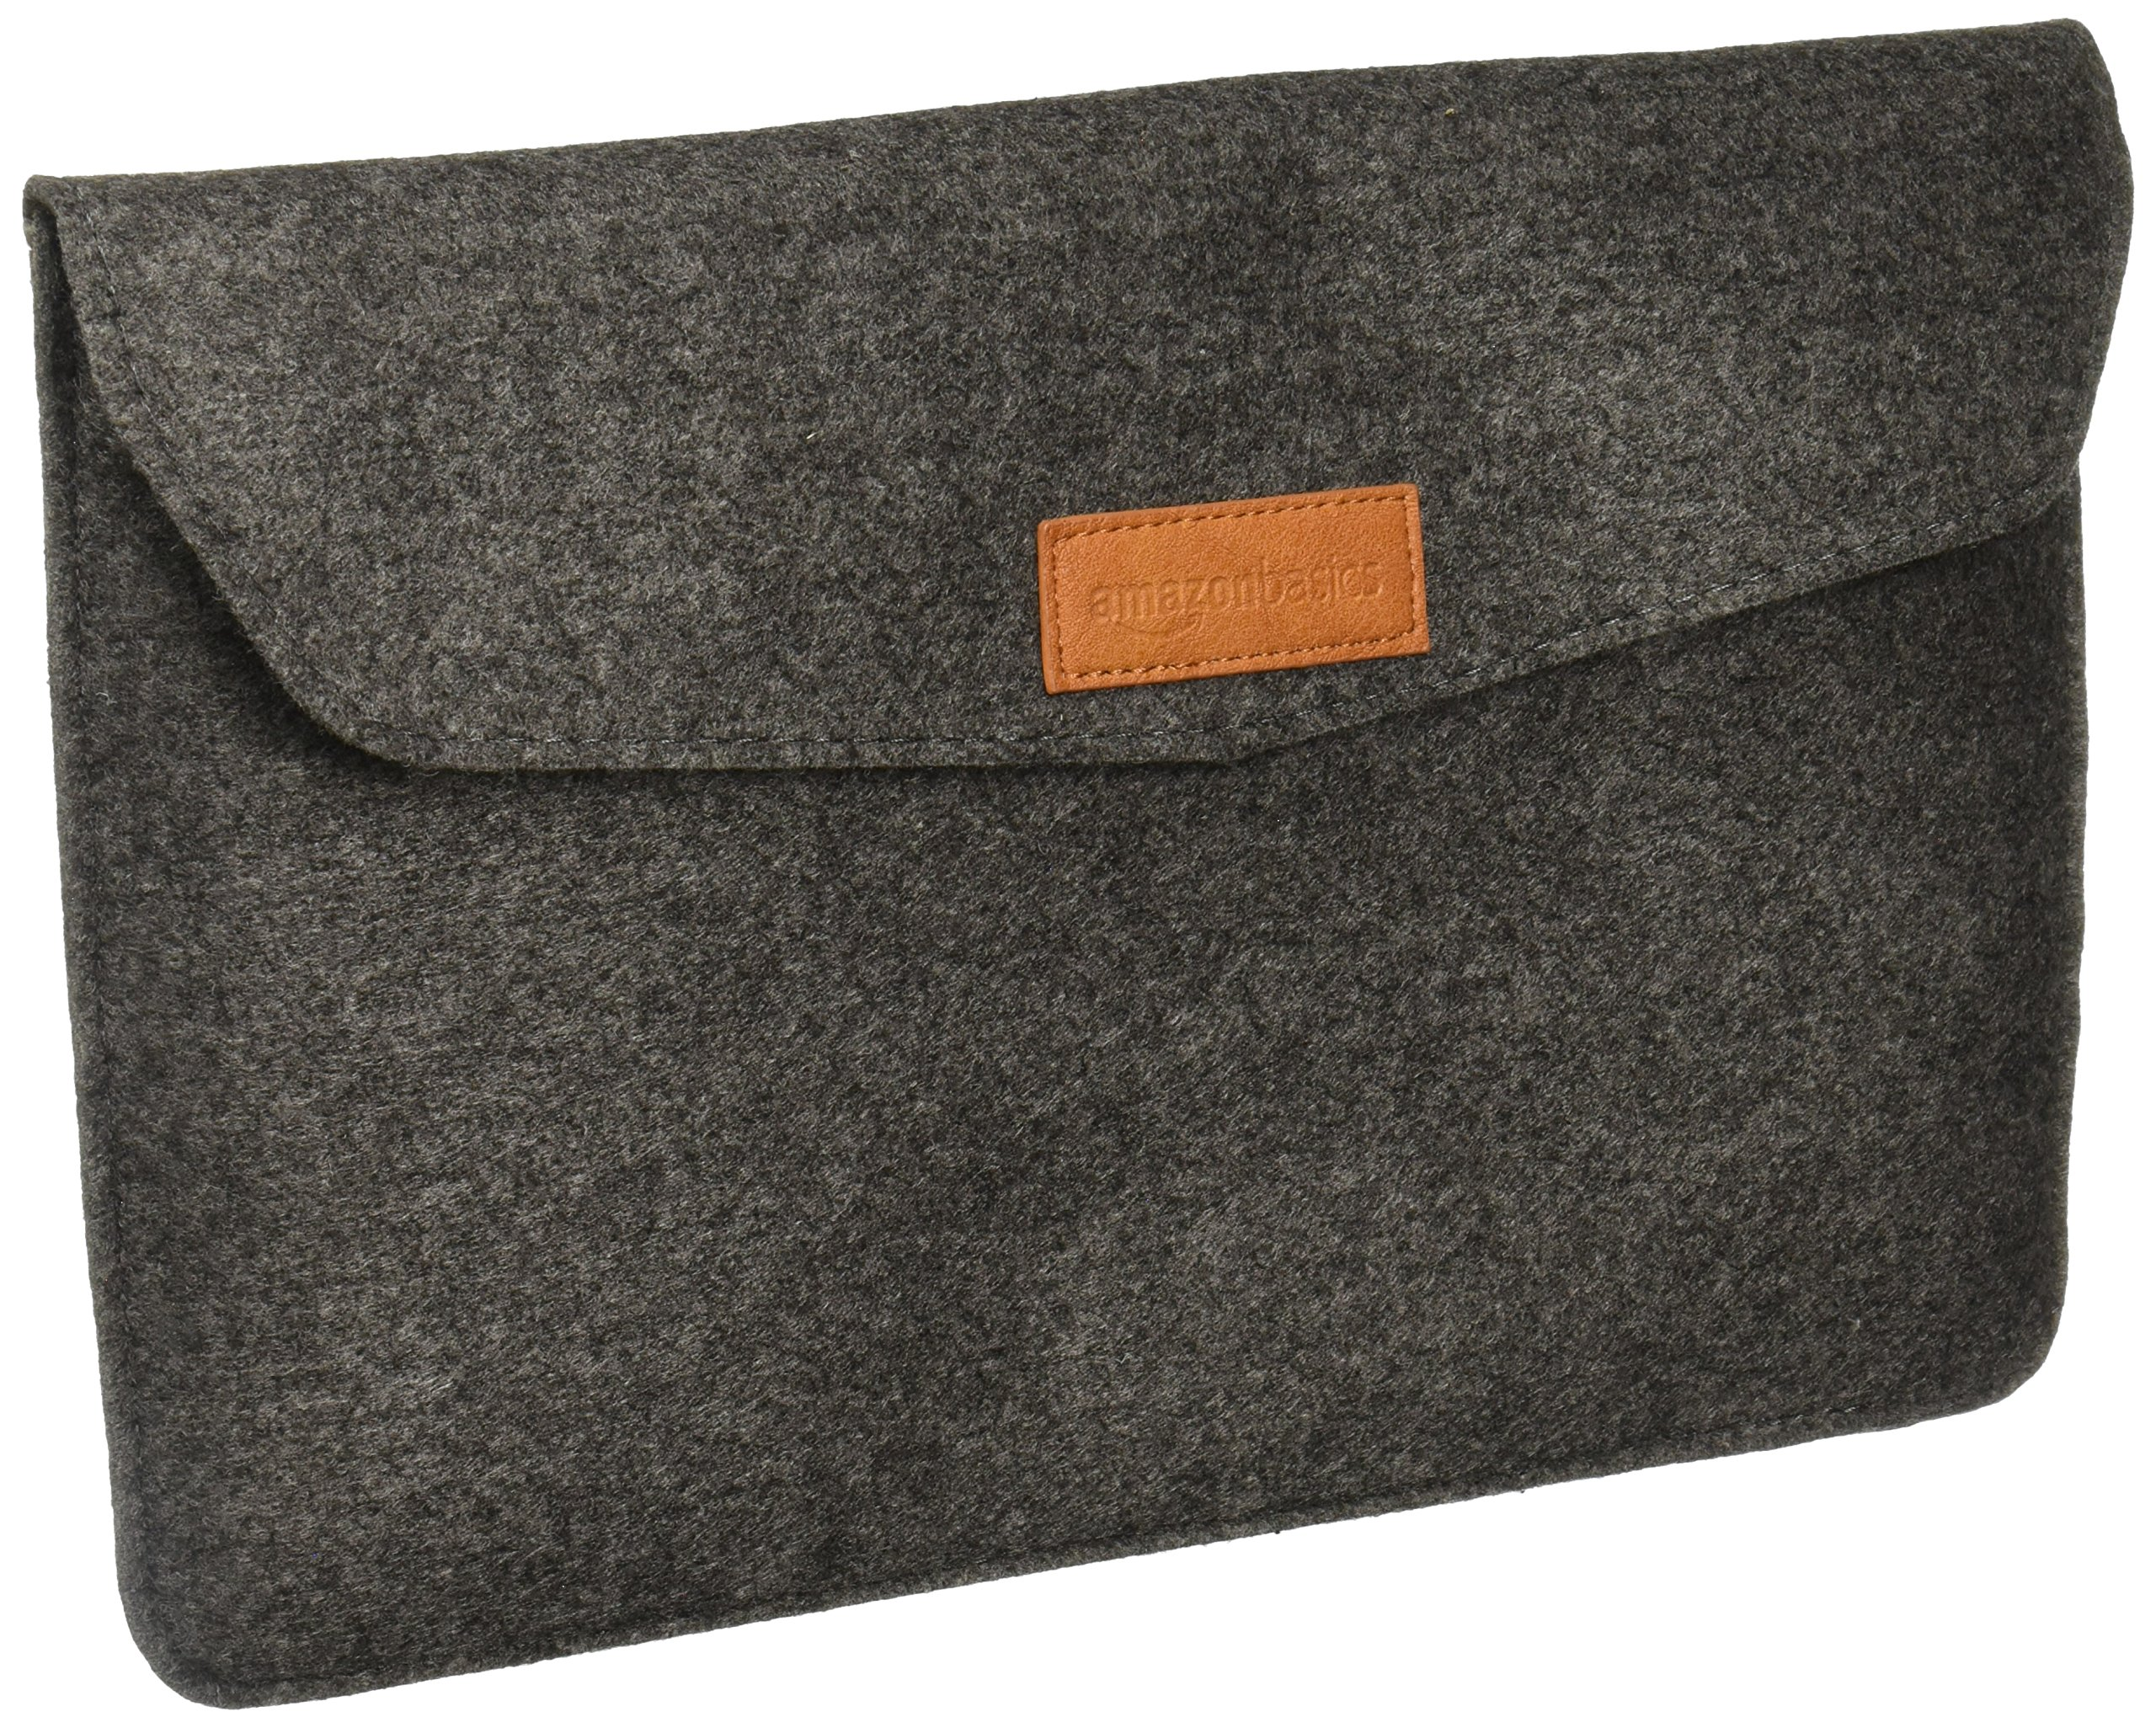 Amazon Basics 11 Inch Felt Macbook Laptop Sleeve Case – Charcoal